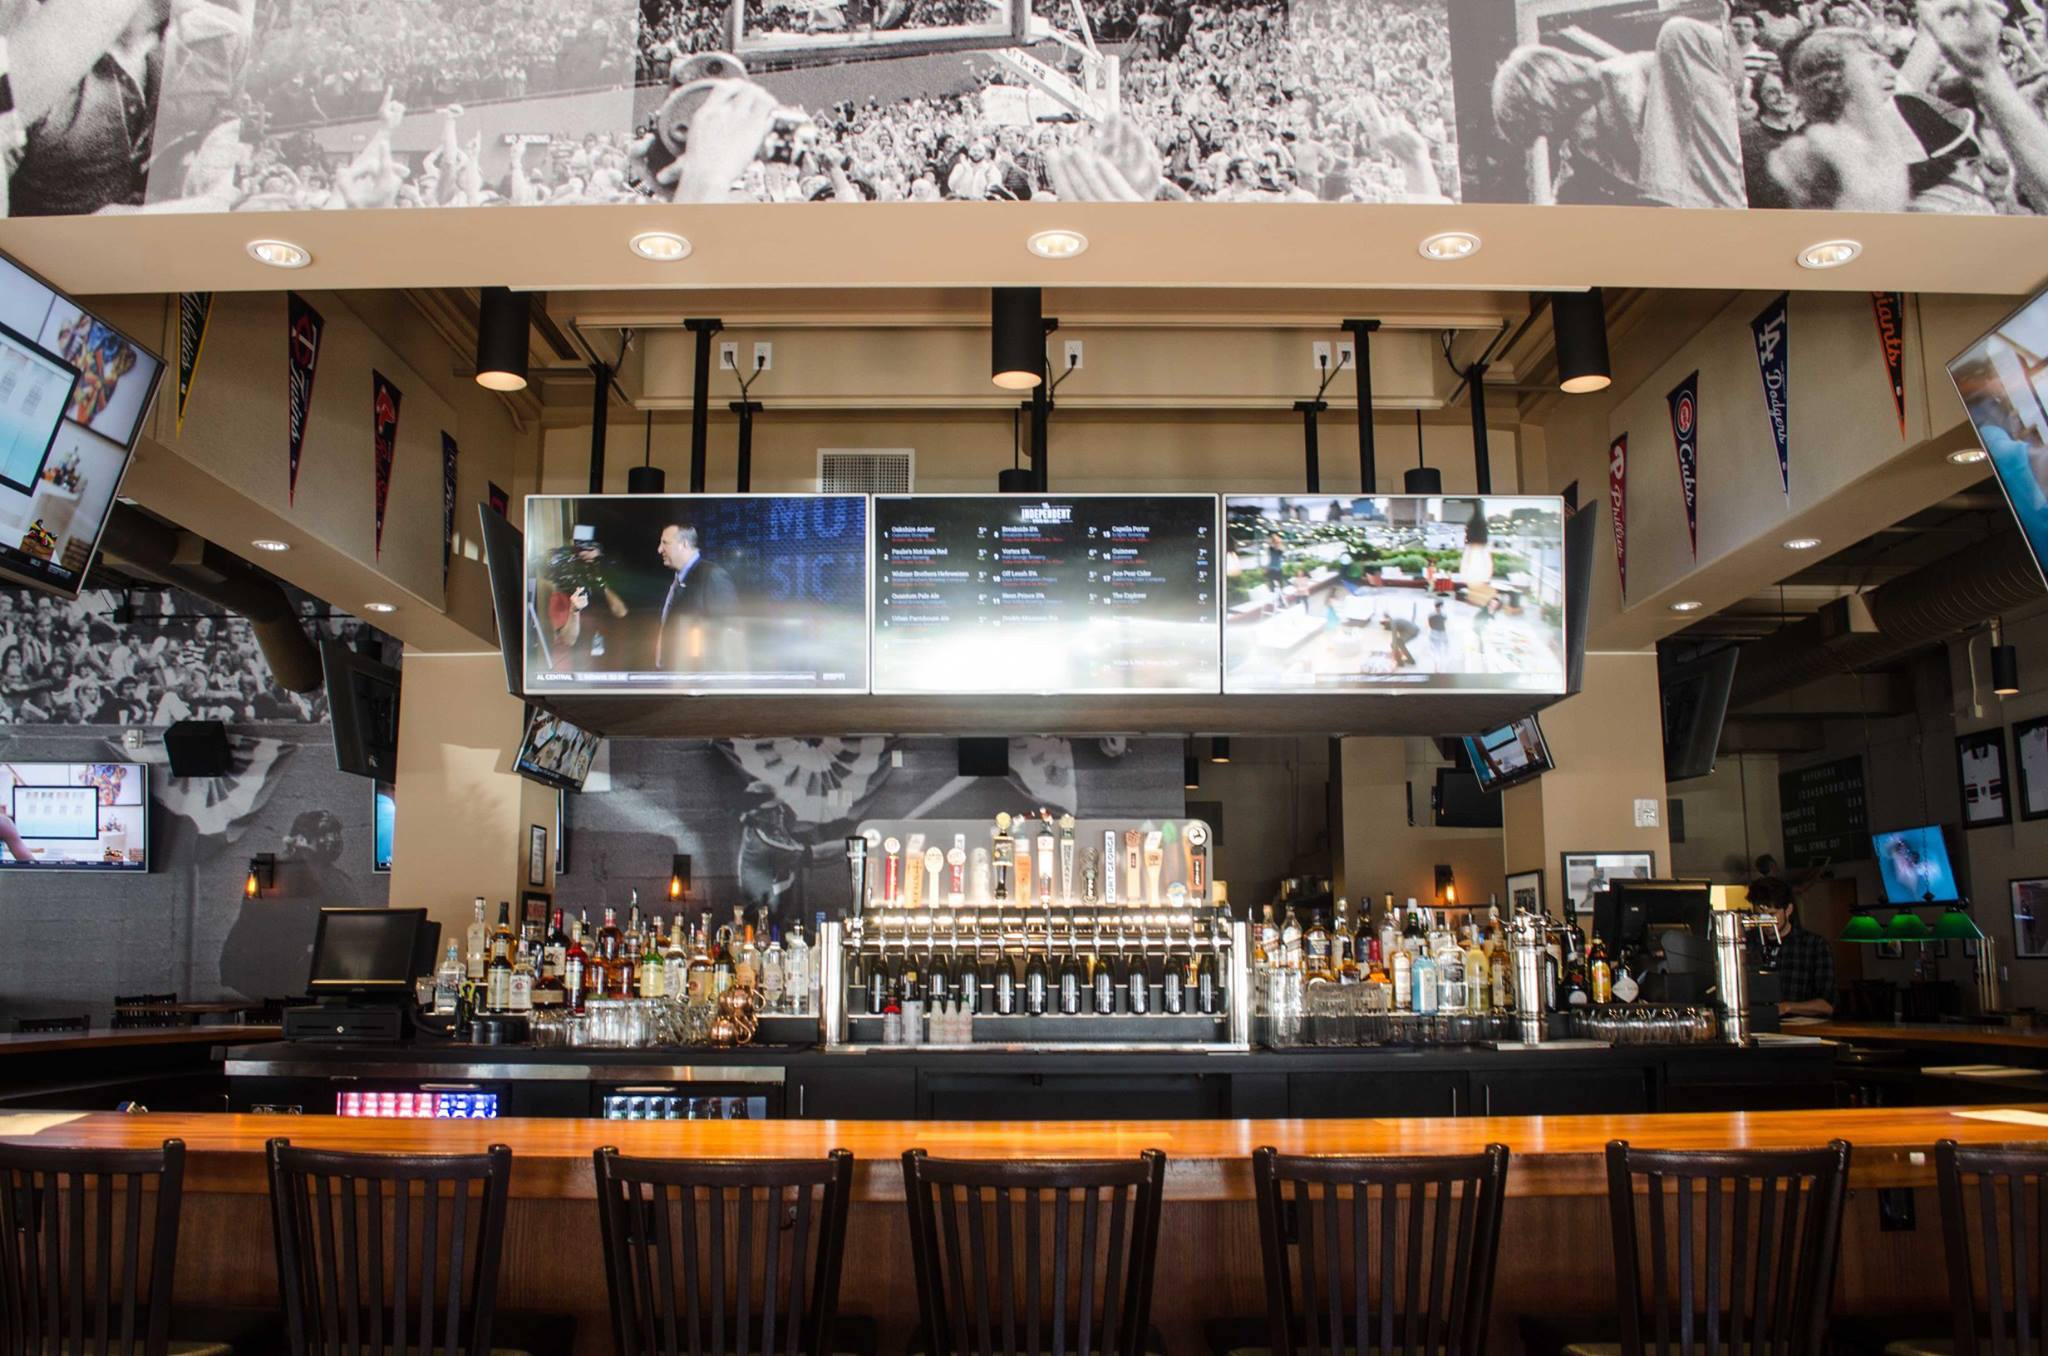 The Independent Sports Bar & Grill